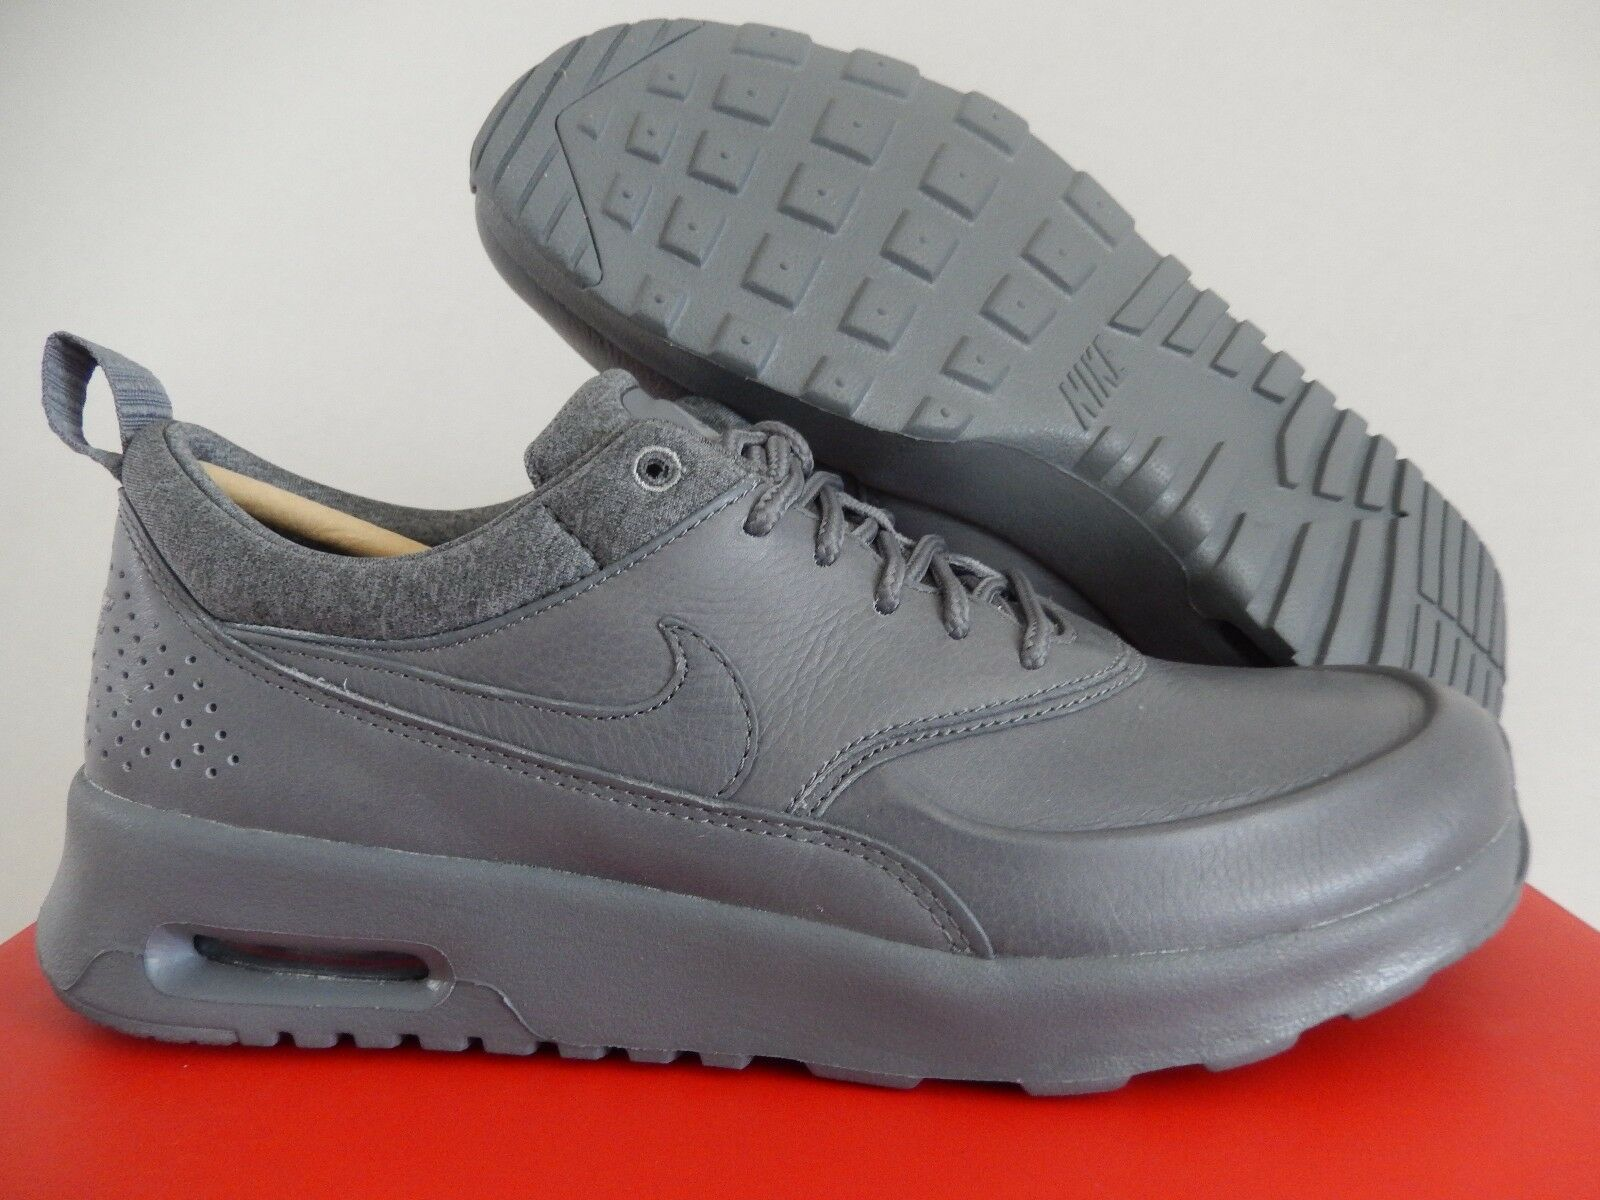 WMNS NIKE AIR MAX THEA PINNACLE COOL GREY-GREY-MATTE SZ 8 [839611-003]